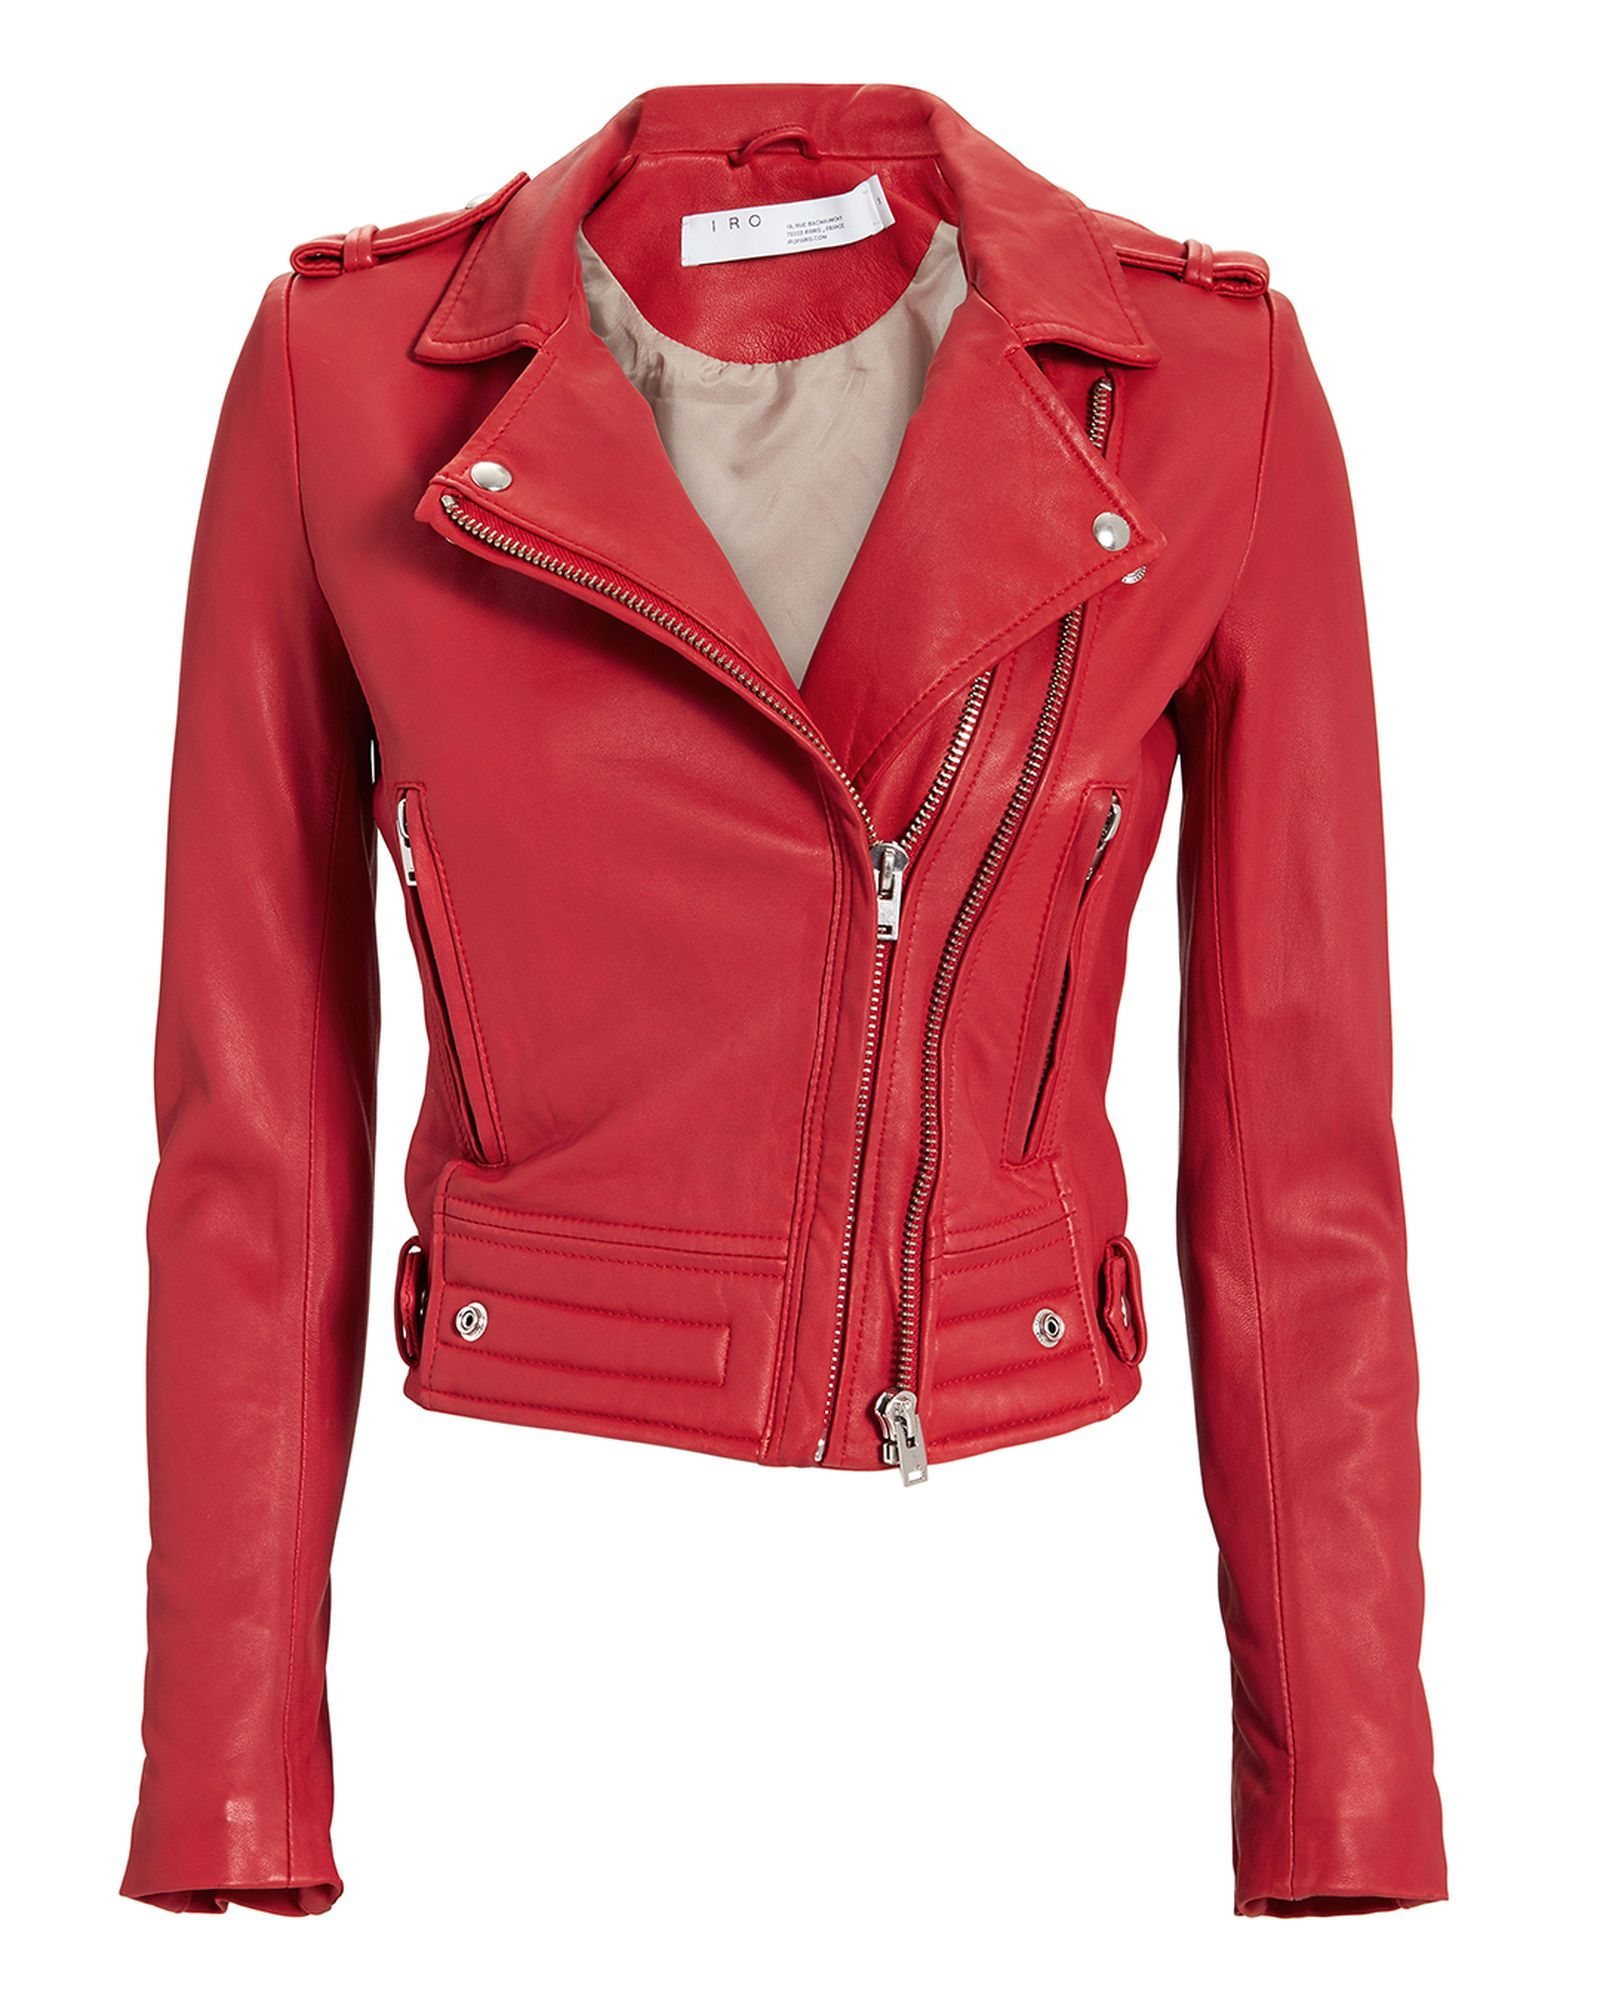 Luiga Red Leather Cropped Moto Jacket, RED, hires (With